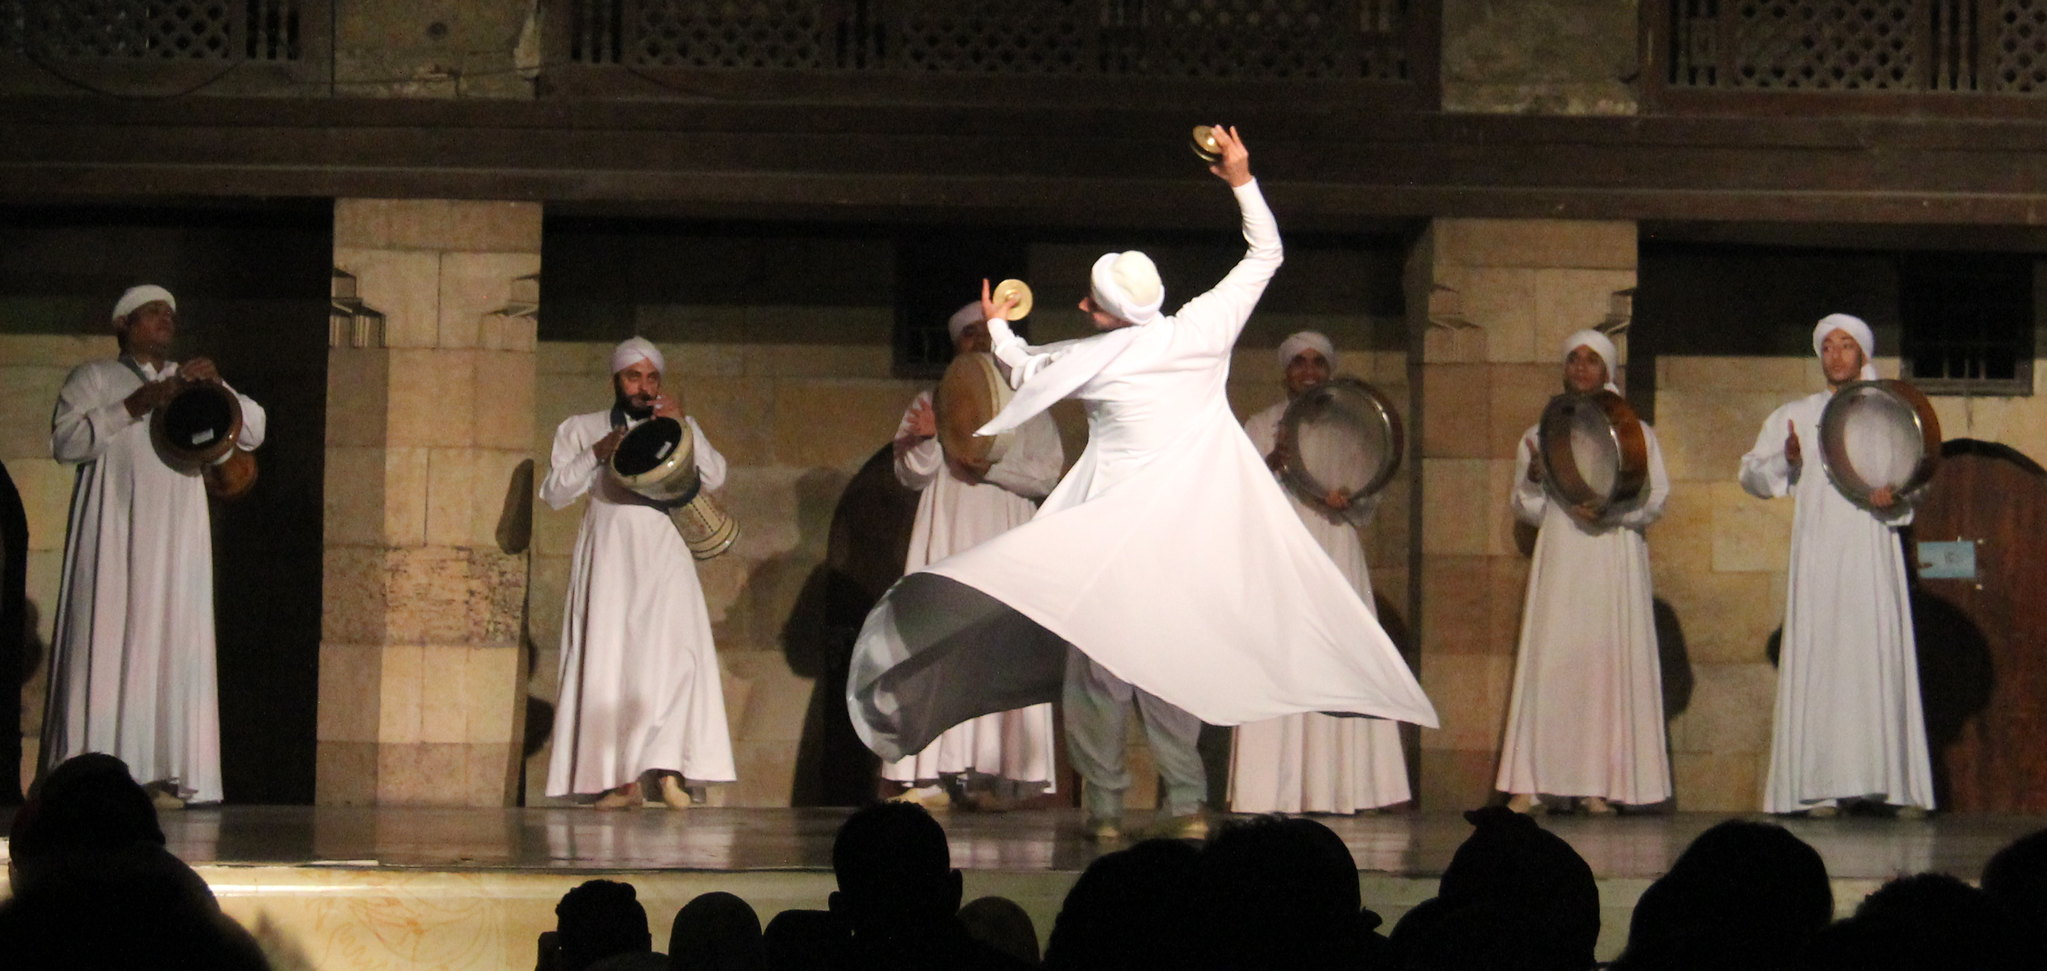 Tanoura begins with recitation of old verses